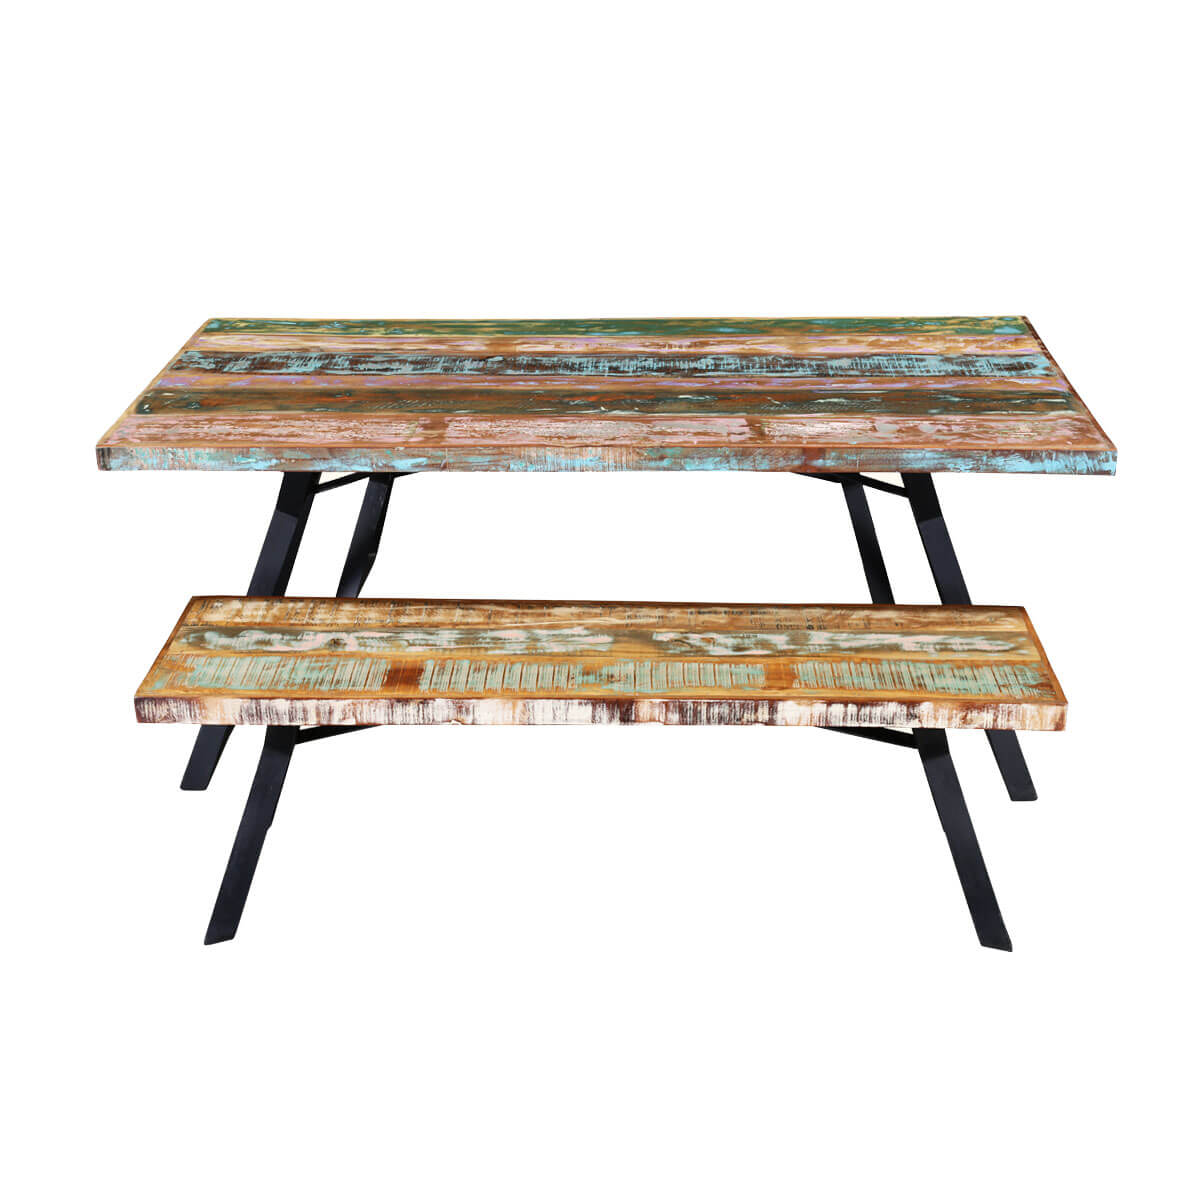 Rainbow Reclaimed Wood Industrial Dining Table W Benches Set